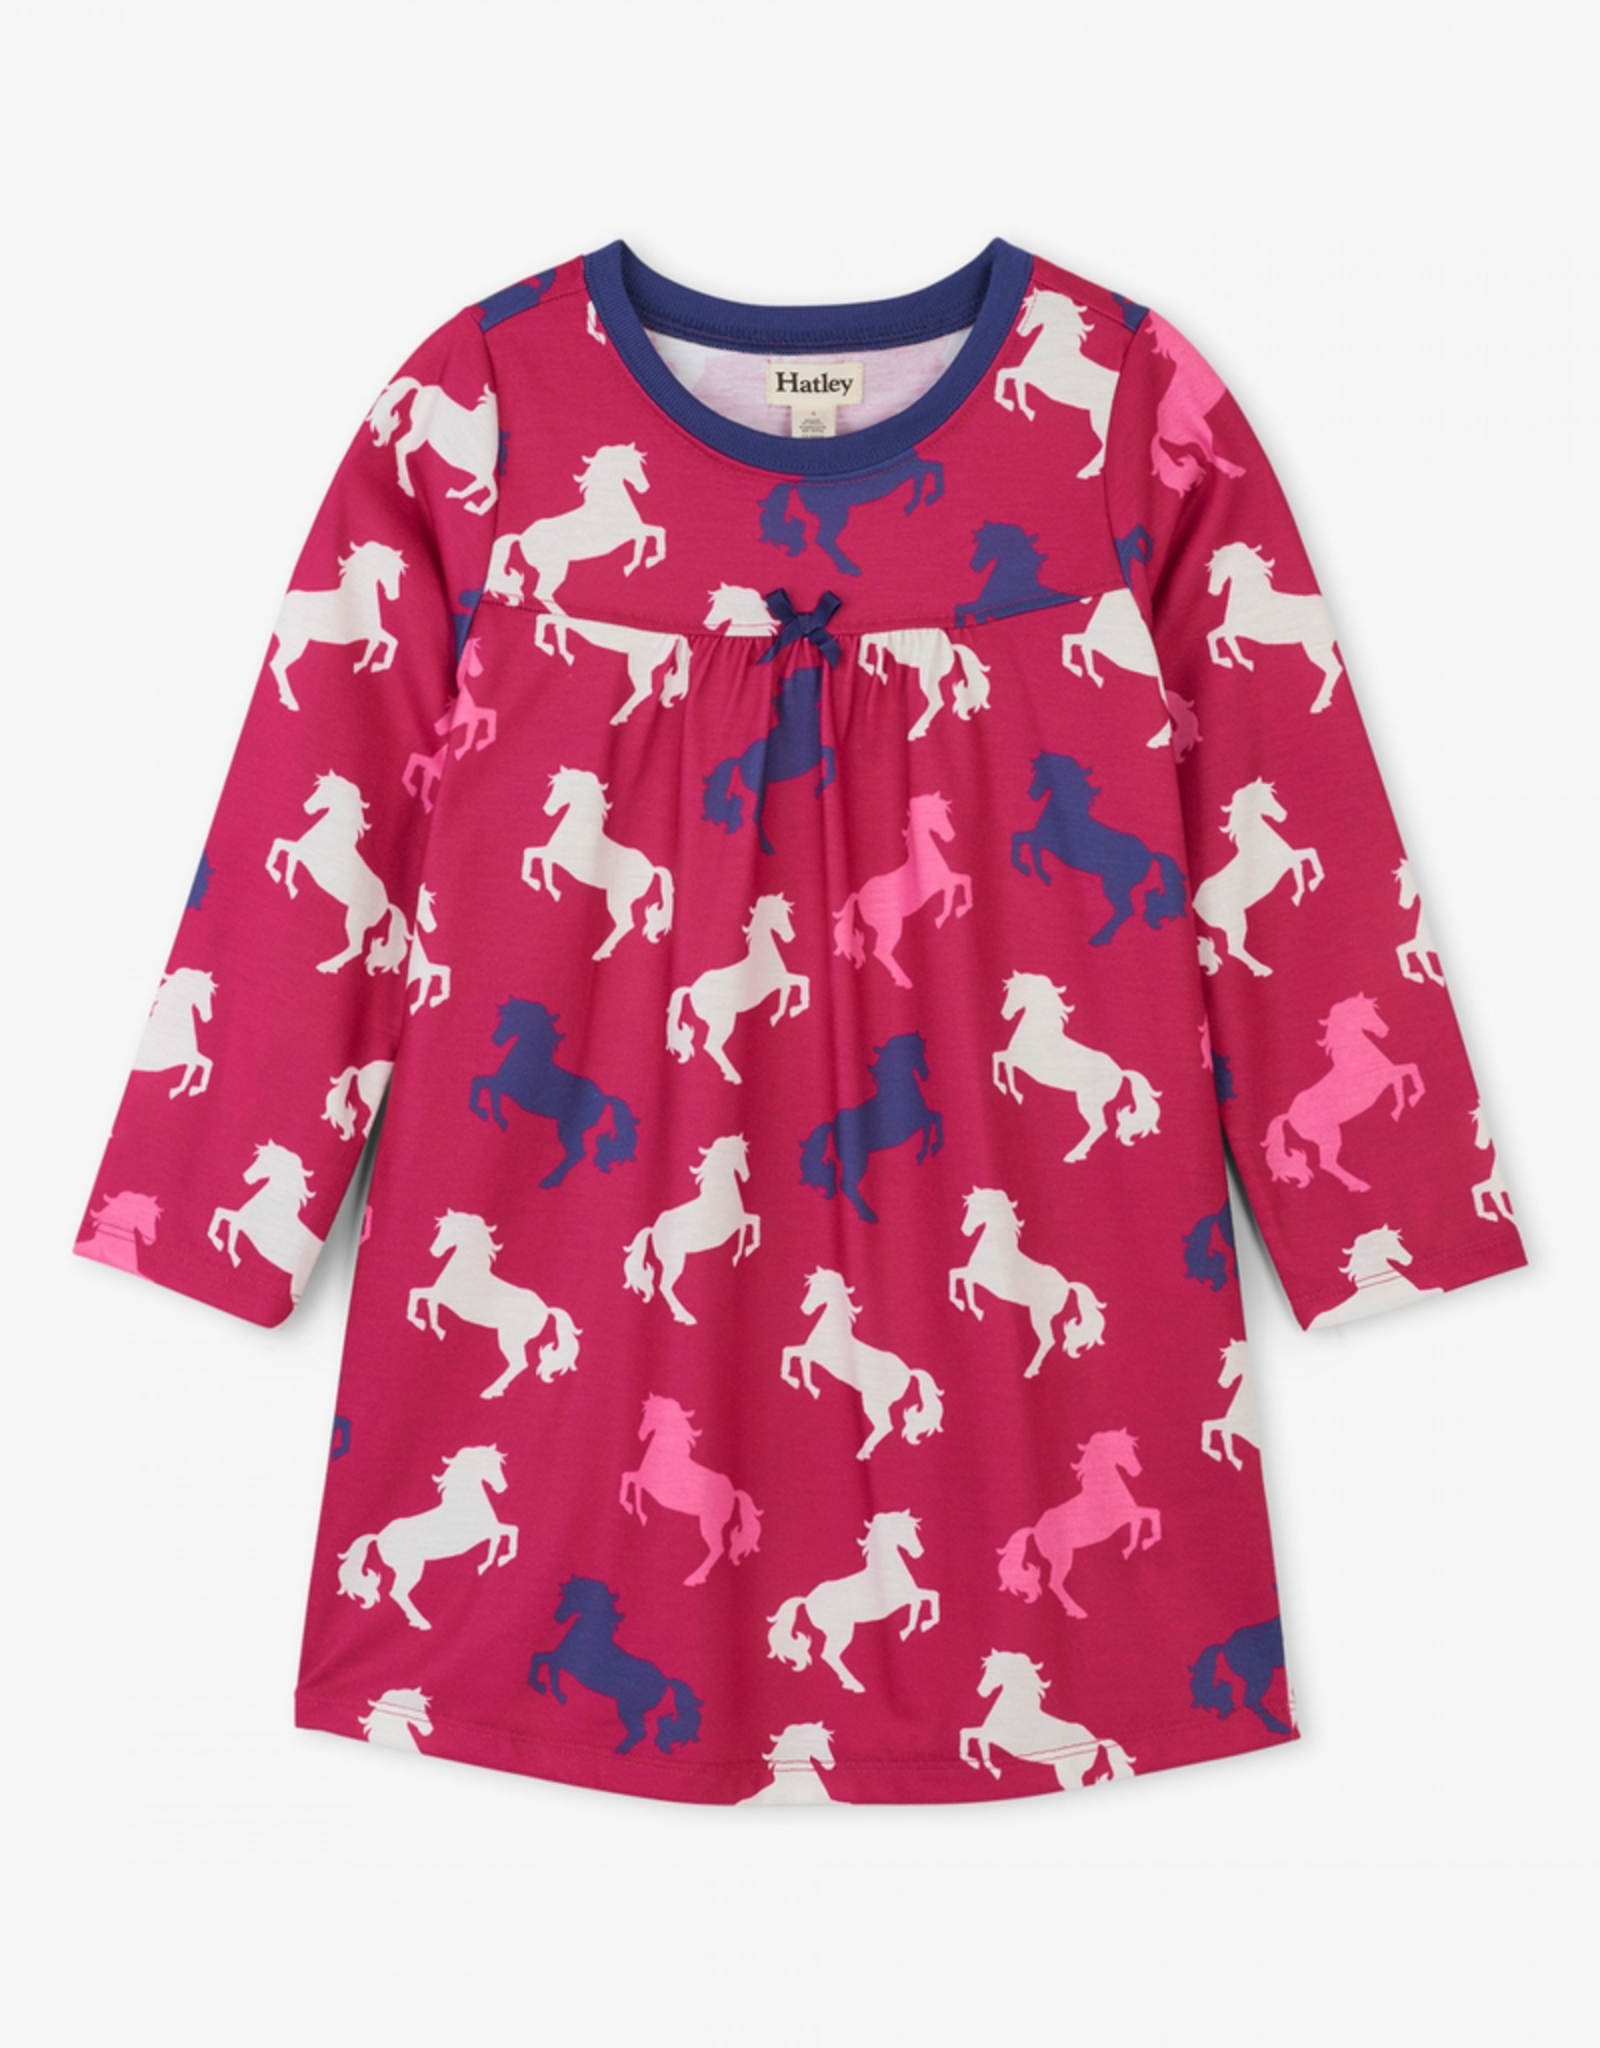 Hatley Playful Horses Nightdress for Girl